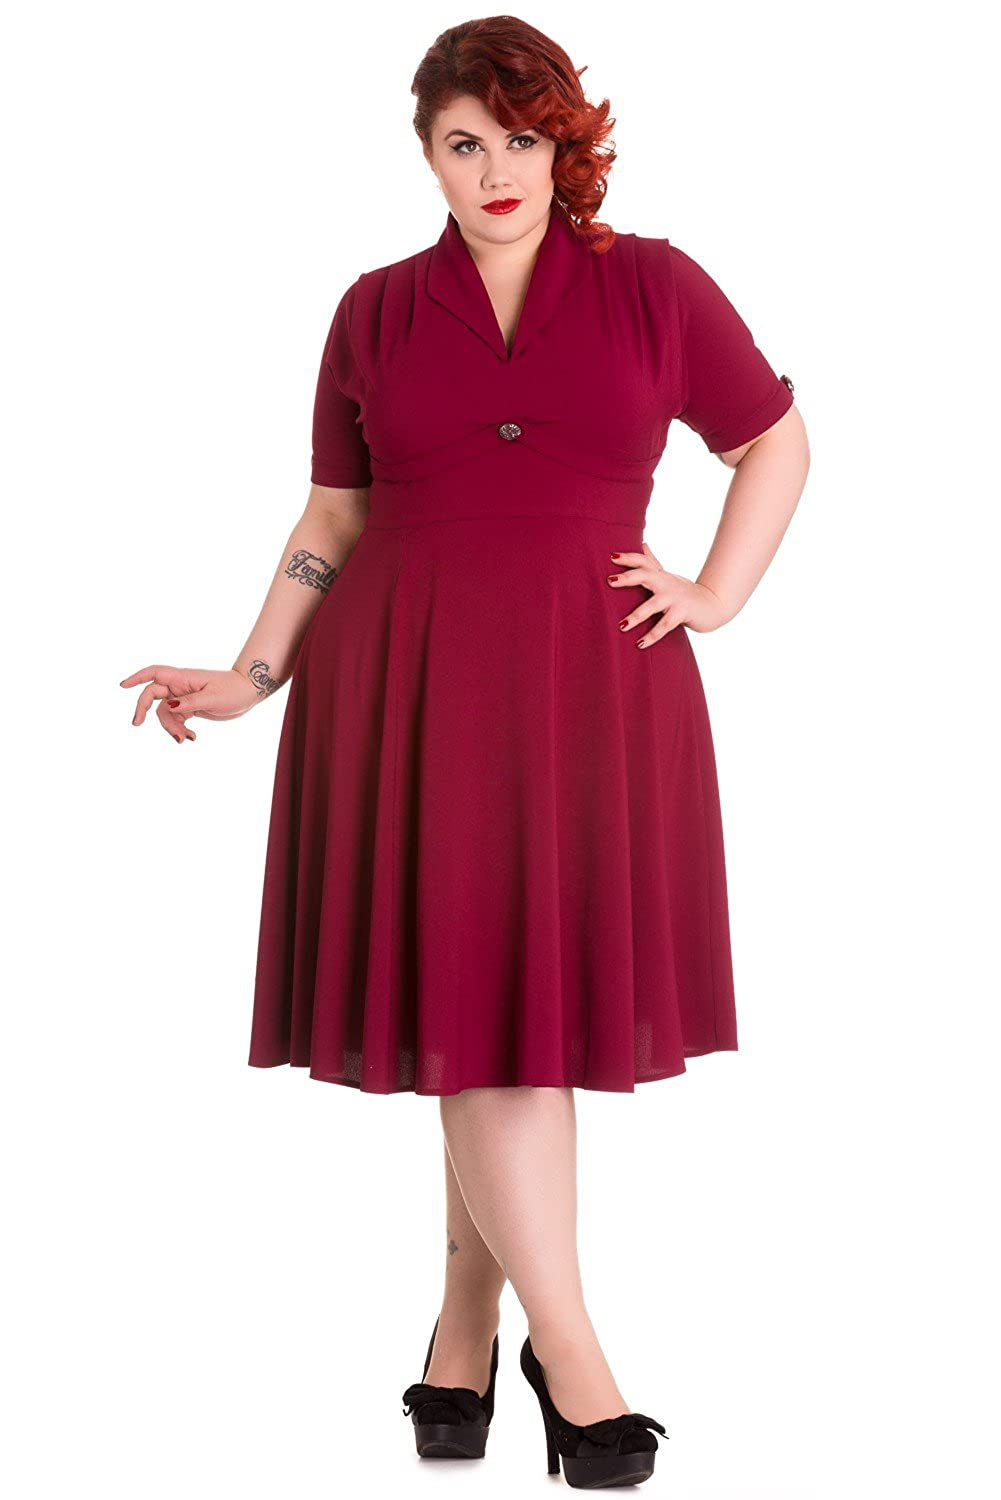 1930s Plus Size Dresses Hell Bunny Plus Size 60s Vintage Style Jocelyn Flare PartyDress $87.00 AT vintagedancer.com